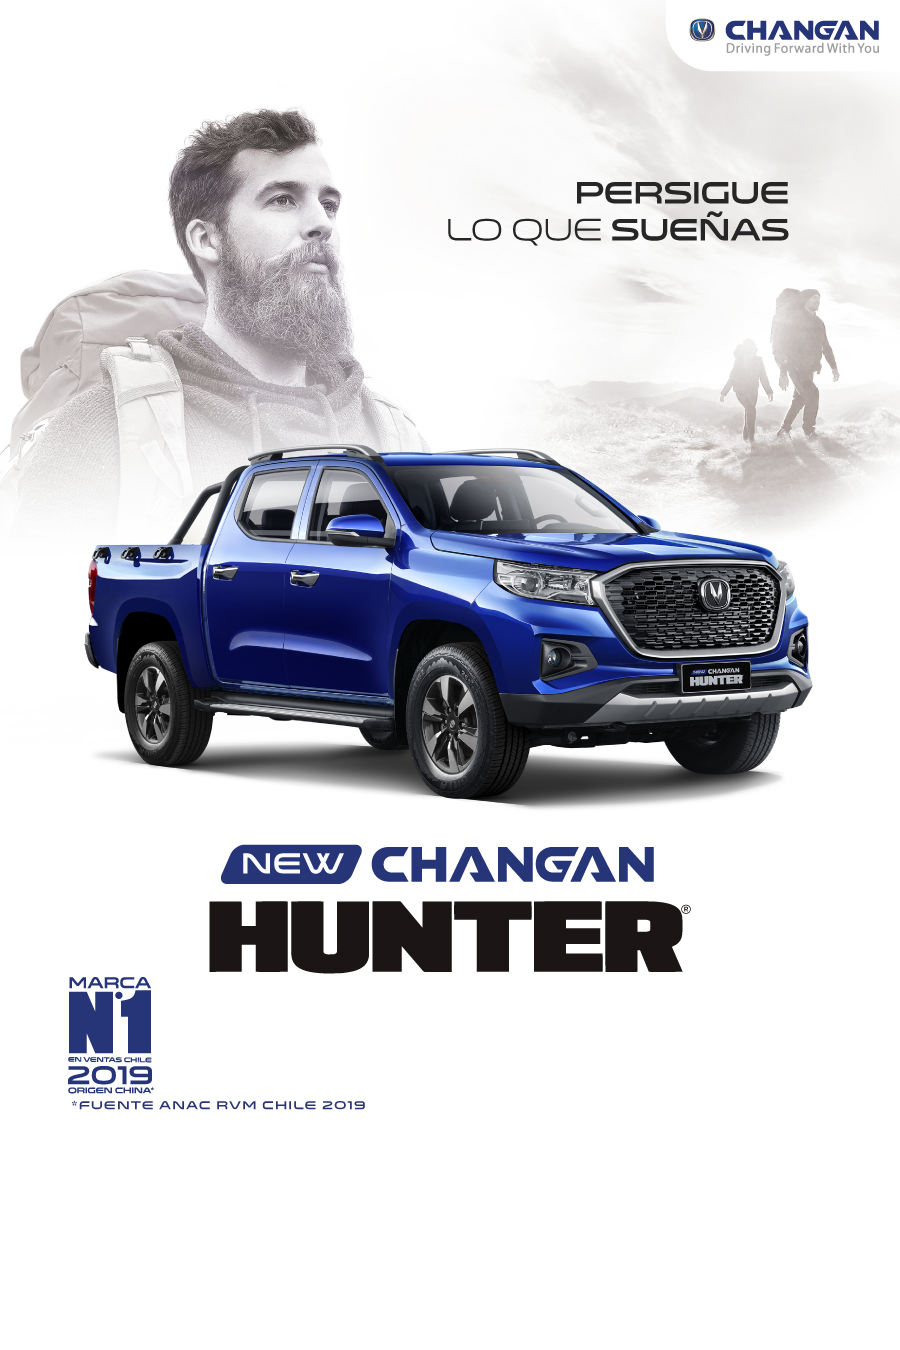 changan-hunter-mobile